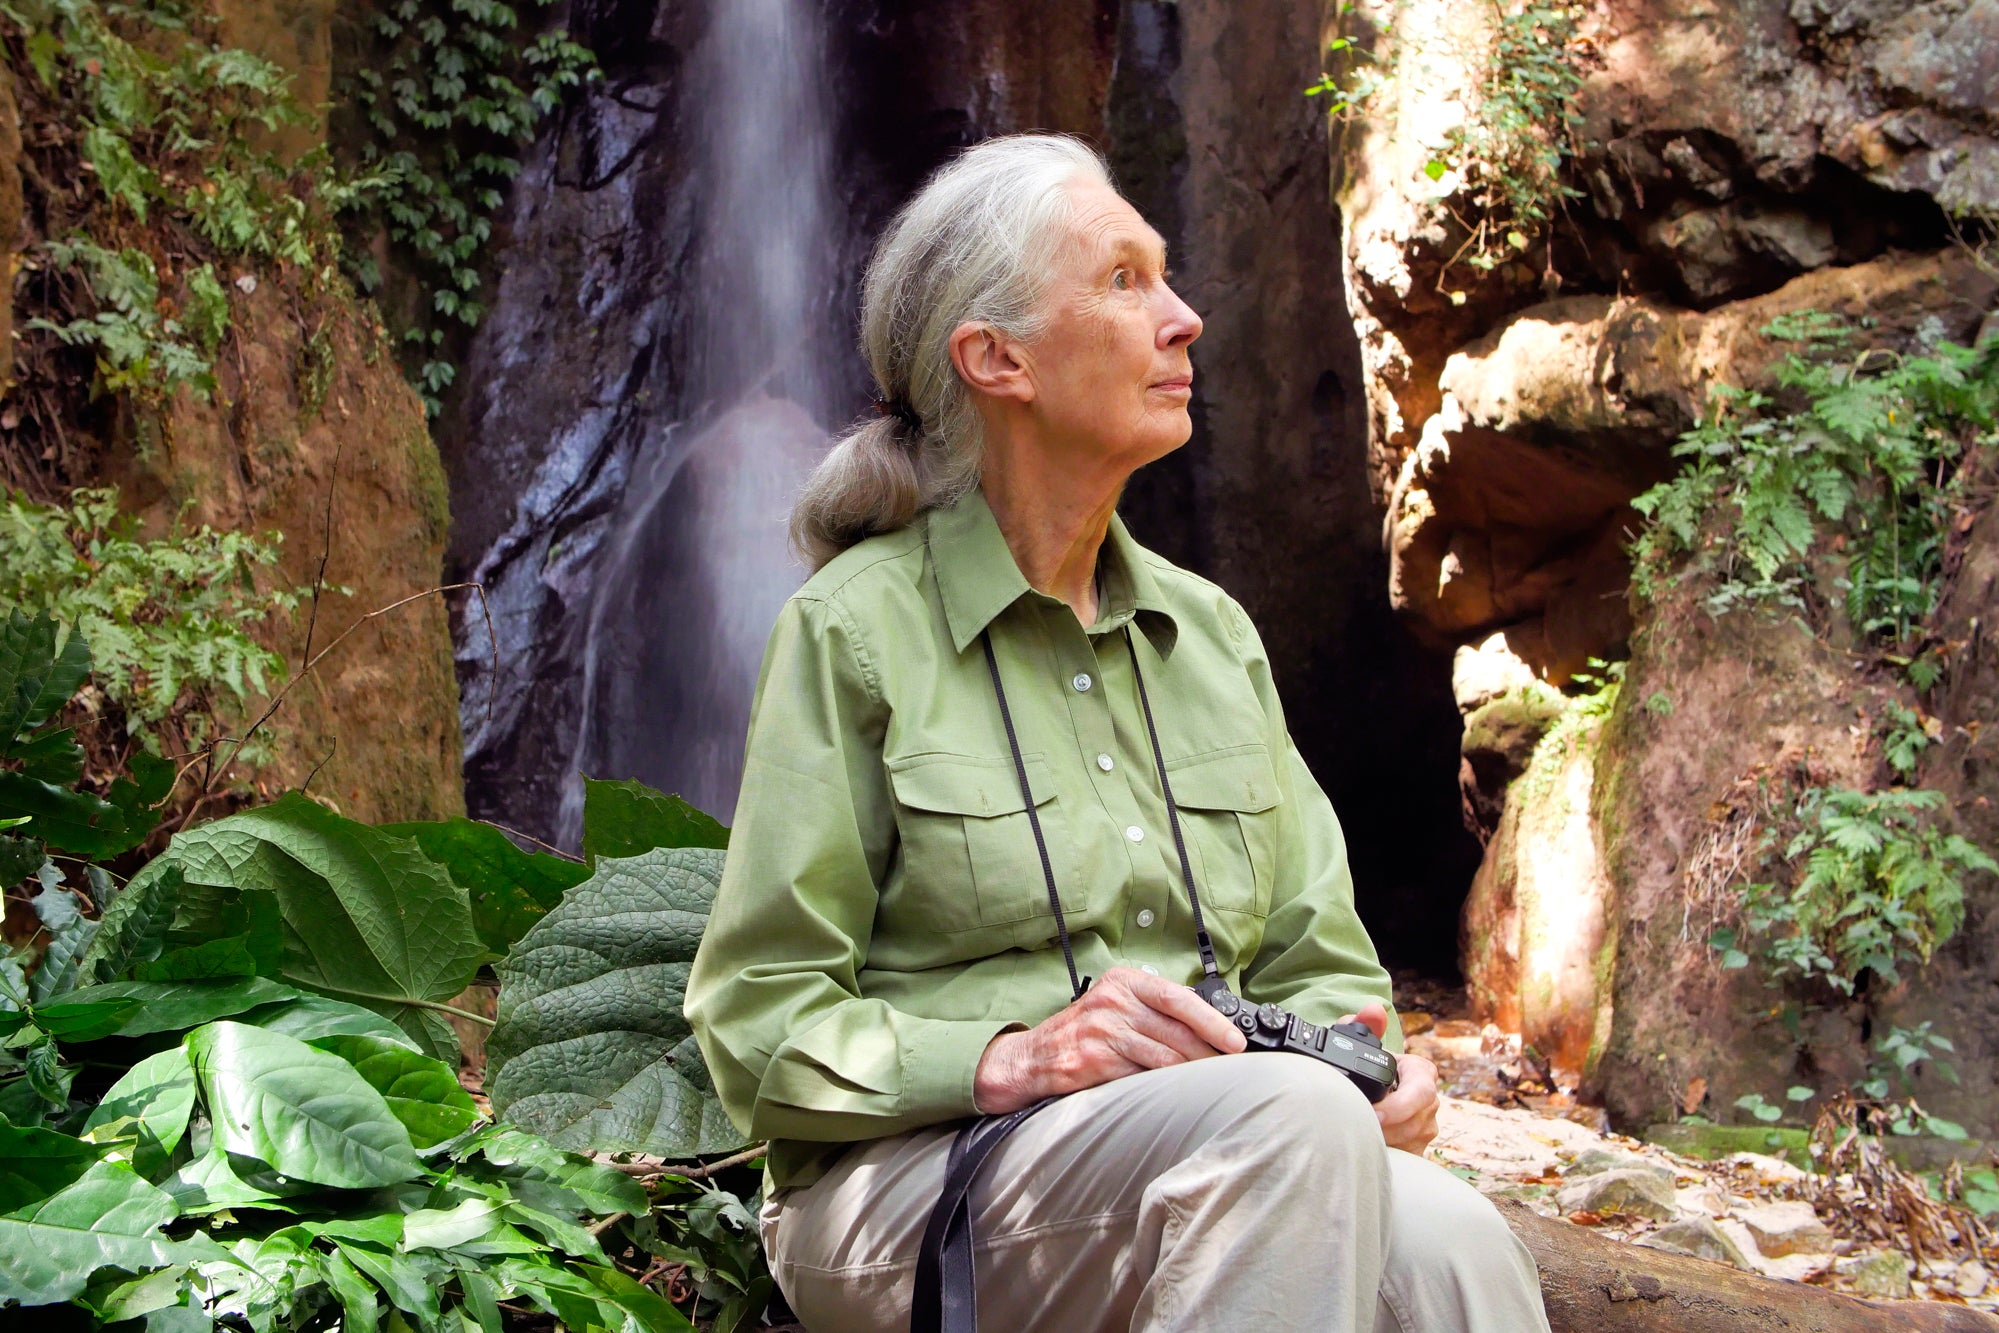 Dr. Jane Goodall outdoors looking to the side